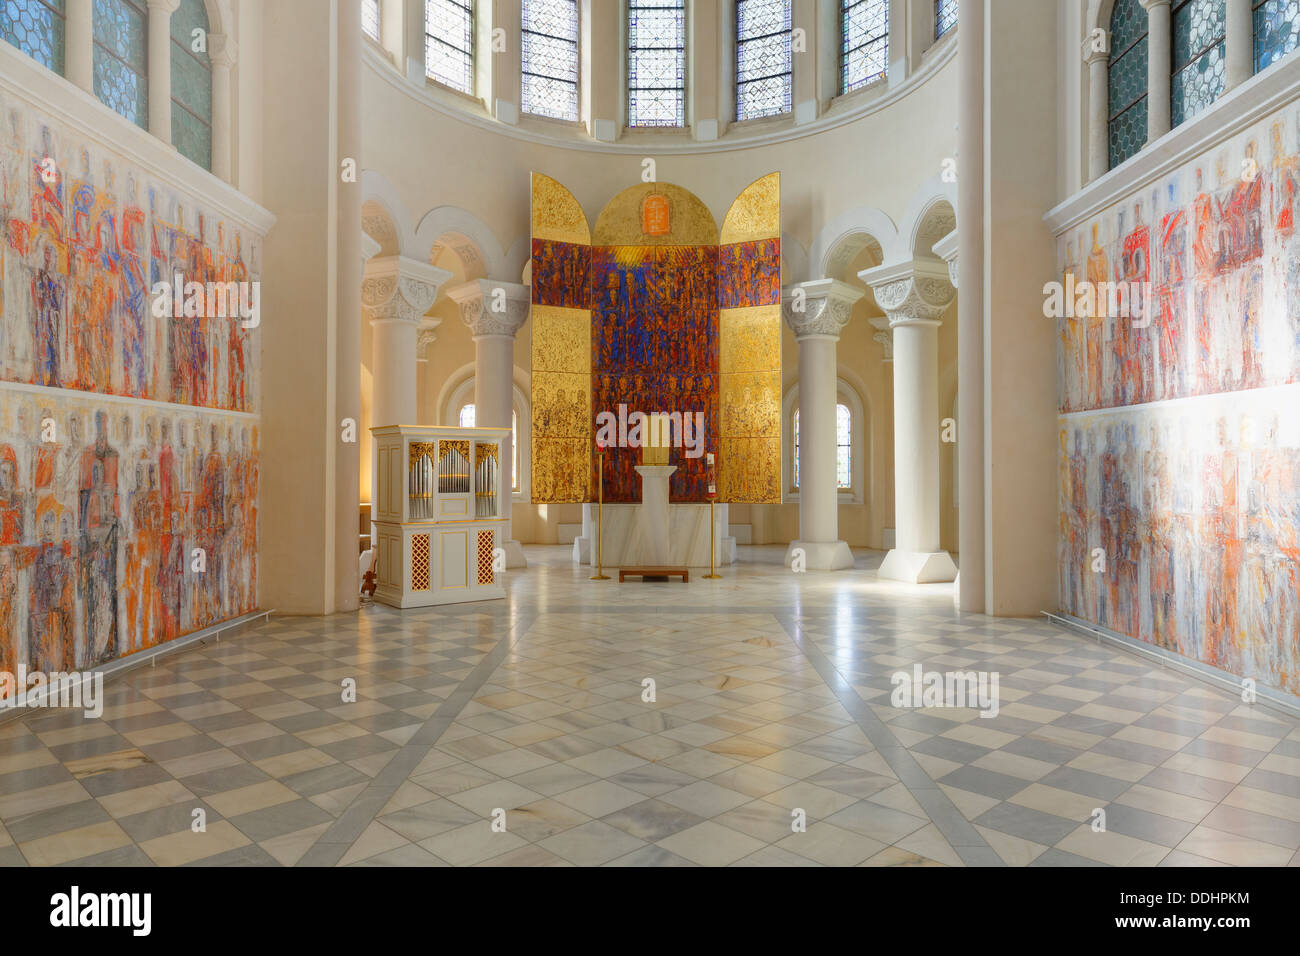 Art of color worrstadt - Secco Fresco Painting With The Altar By Valentin Oman 1987 In The